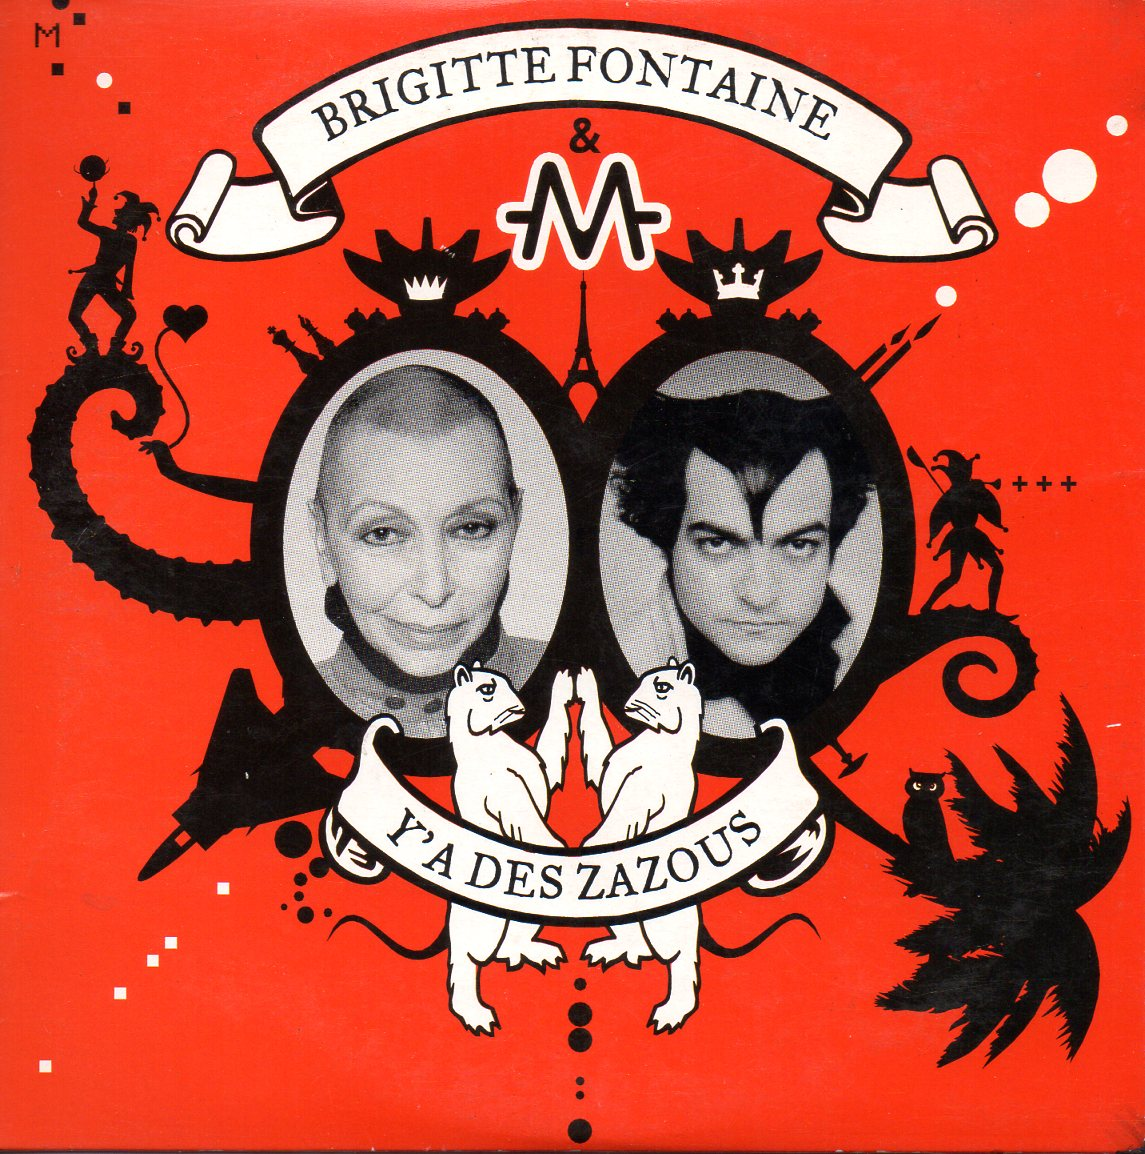 BRIGITTE FONTAINE & MATHIEU CHEDID -M- - Y'a des zazous 2-track CARD SLEEVE - CD single